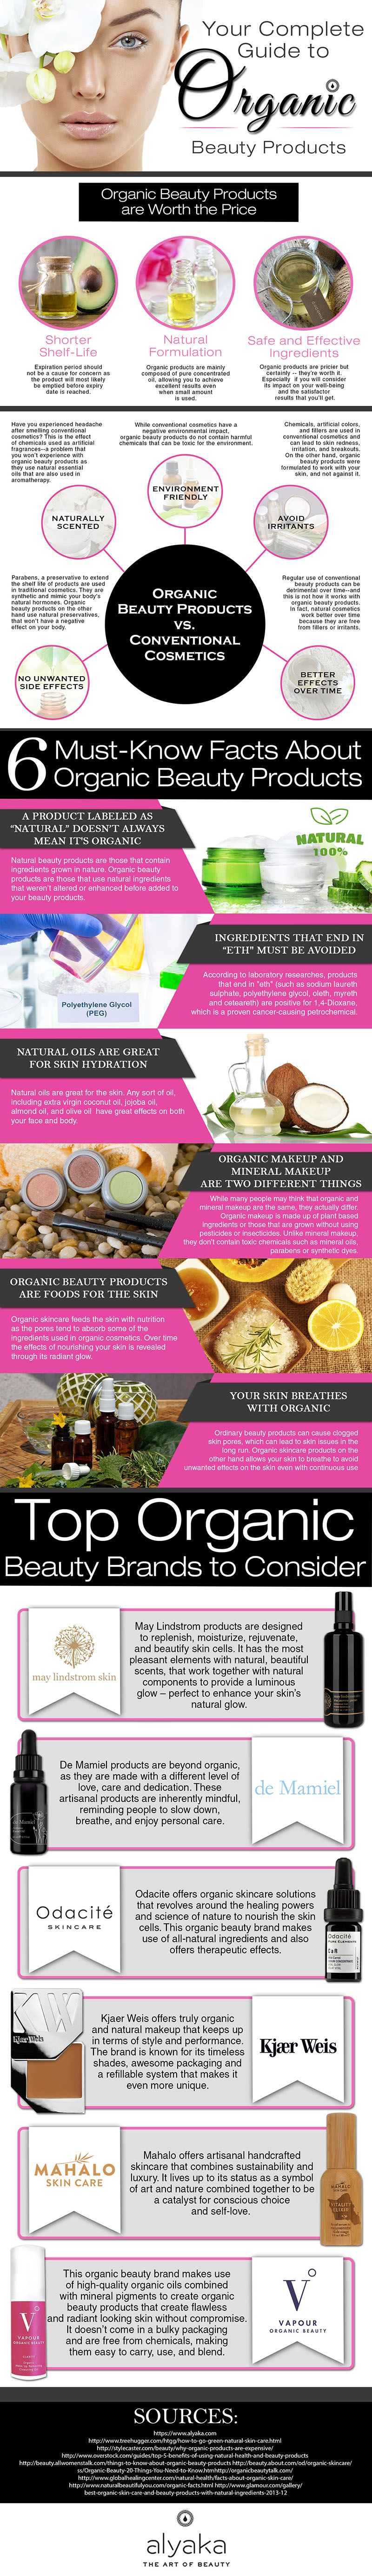 Complete Guide to Organic Beauty Products